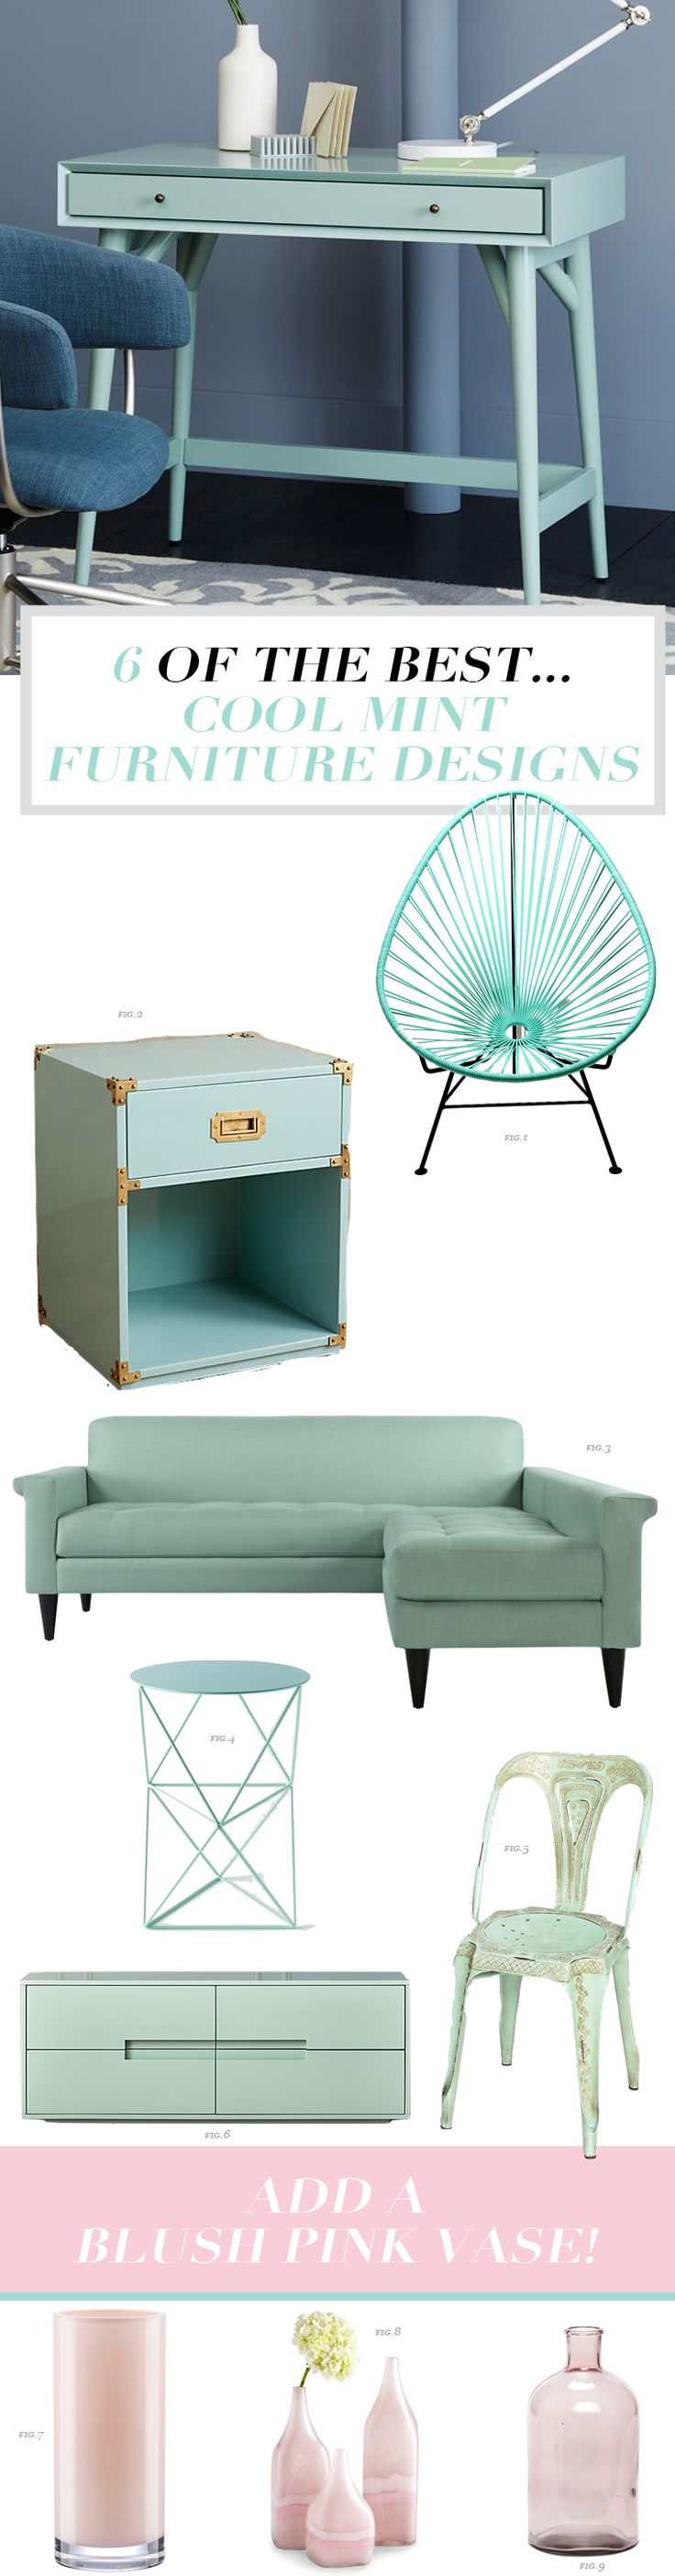 Do you love mint? Want to bring color into your home, bedroom or living room design. Check out my round up of the six best cool mint furniture pieces including mint chairs, sofas and sideboards. So many decor ideas for your whole home. Click through to see all the details!